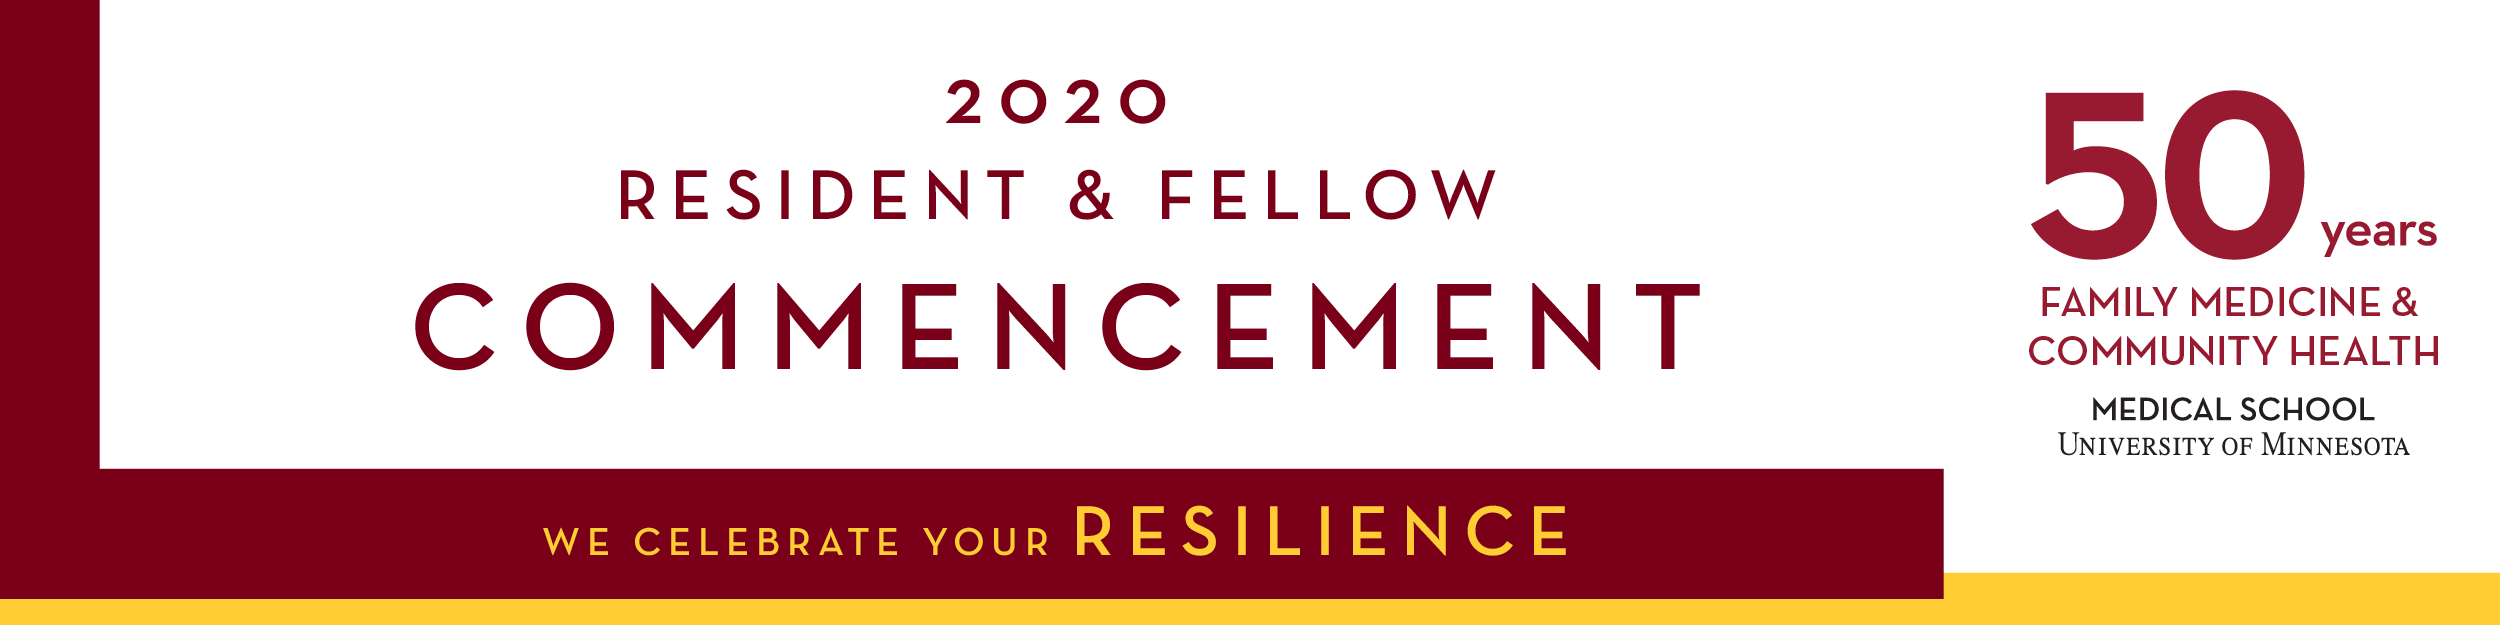 2020 Resident And Fellow Commencement | Medical School Pertaining To University Of Minnesota2020 2021 Academic Calendar